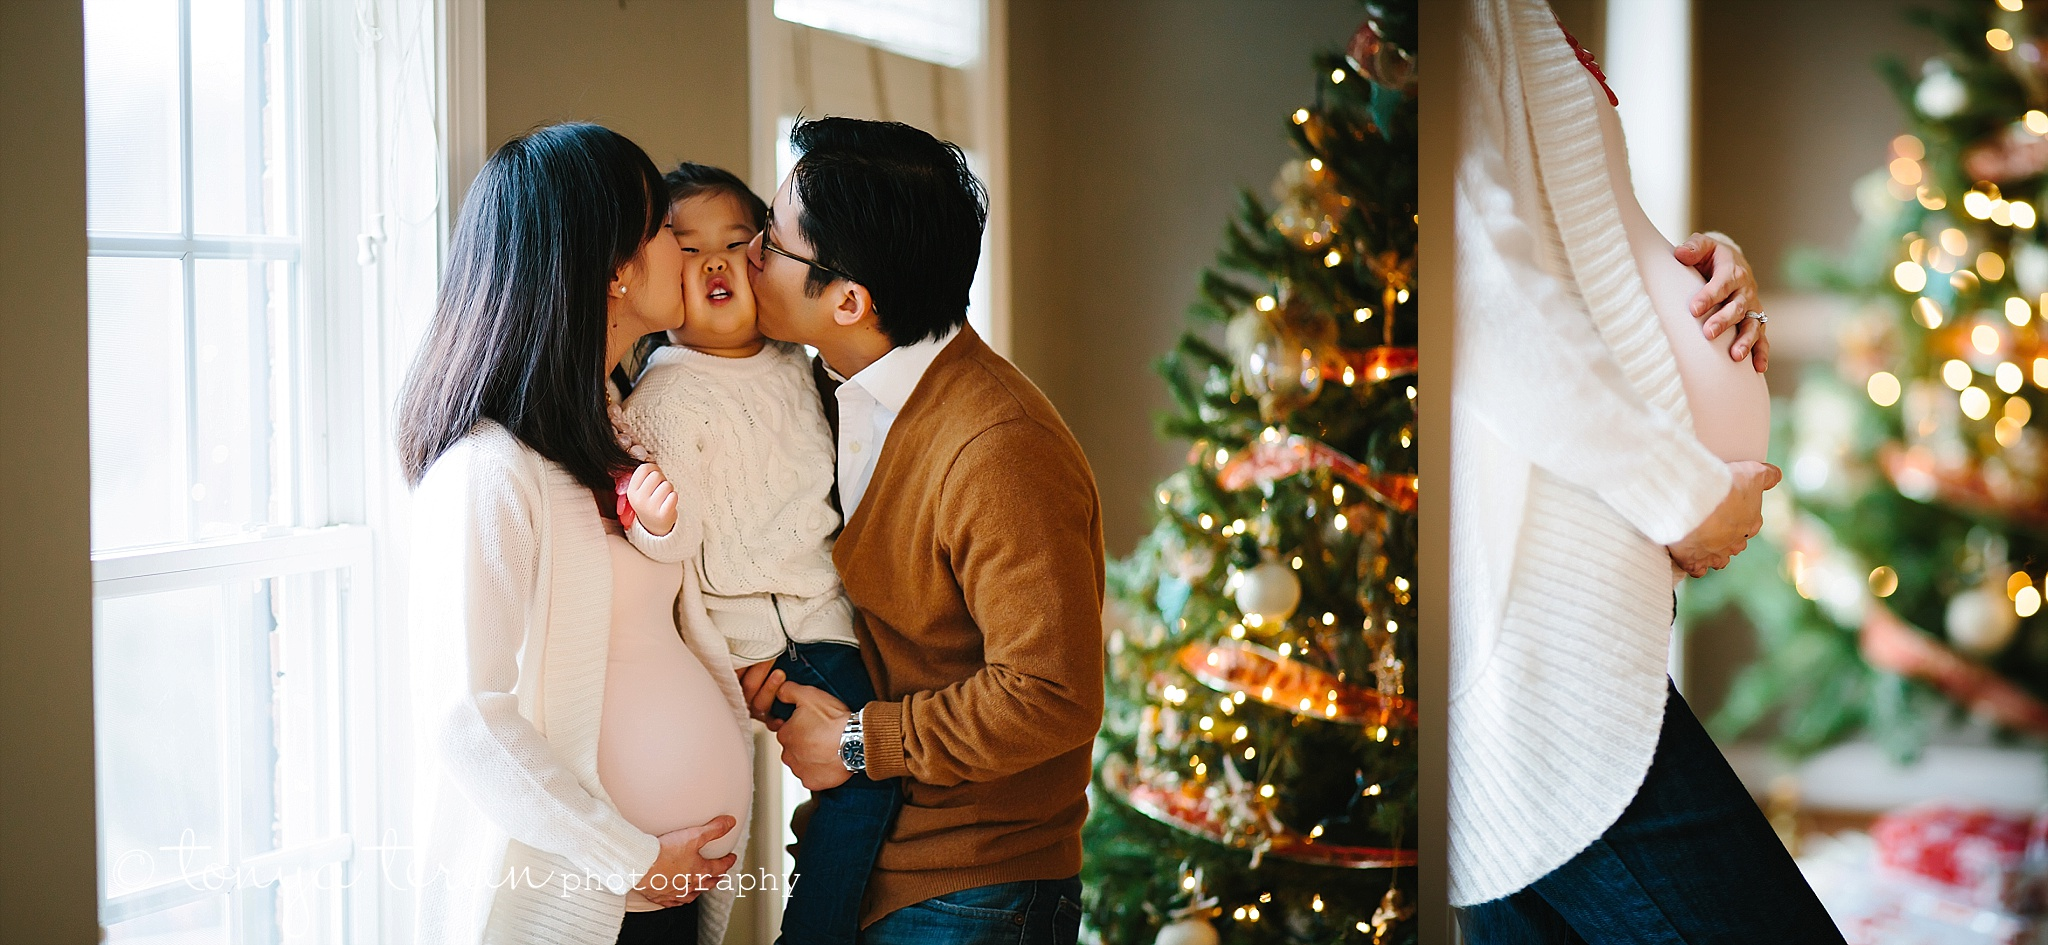 Lifestyle Family Christmas Maternity Photo Session | Tonya Teran Photography, Gaithersburg, MD Newborn, Baby, and Family Photographer